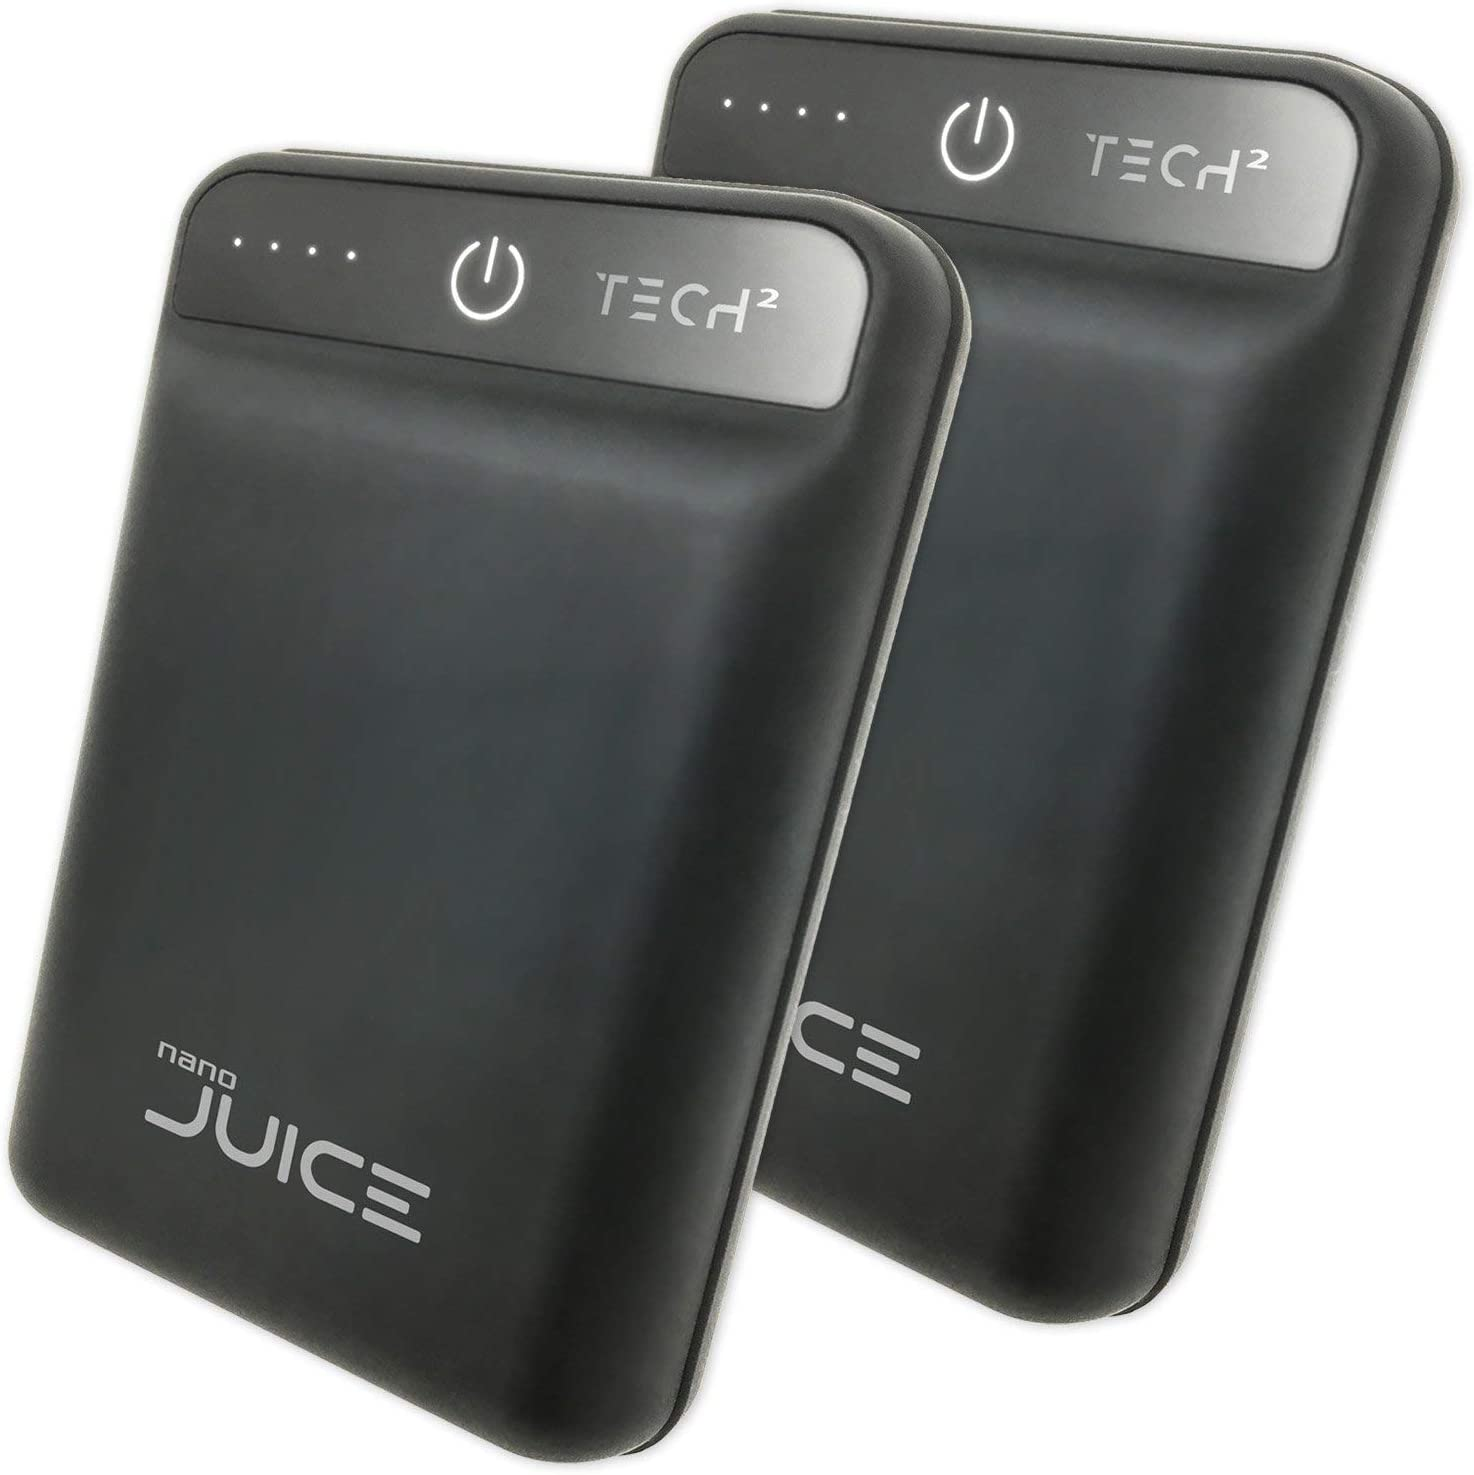 Compact Tech2 Nano Juice Pack of 2 Portable Chargers One The Smallest Lightest 10,000 mAh Power Banks High-Speed Charging Technology 2 USB Ports for iPhone Samsung Galaxy Black with Rubber Finish